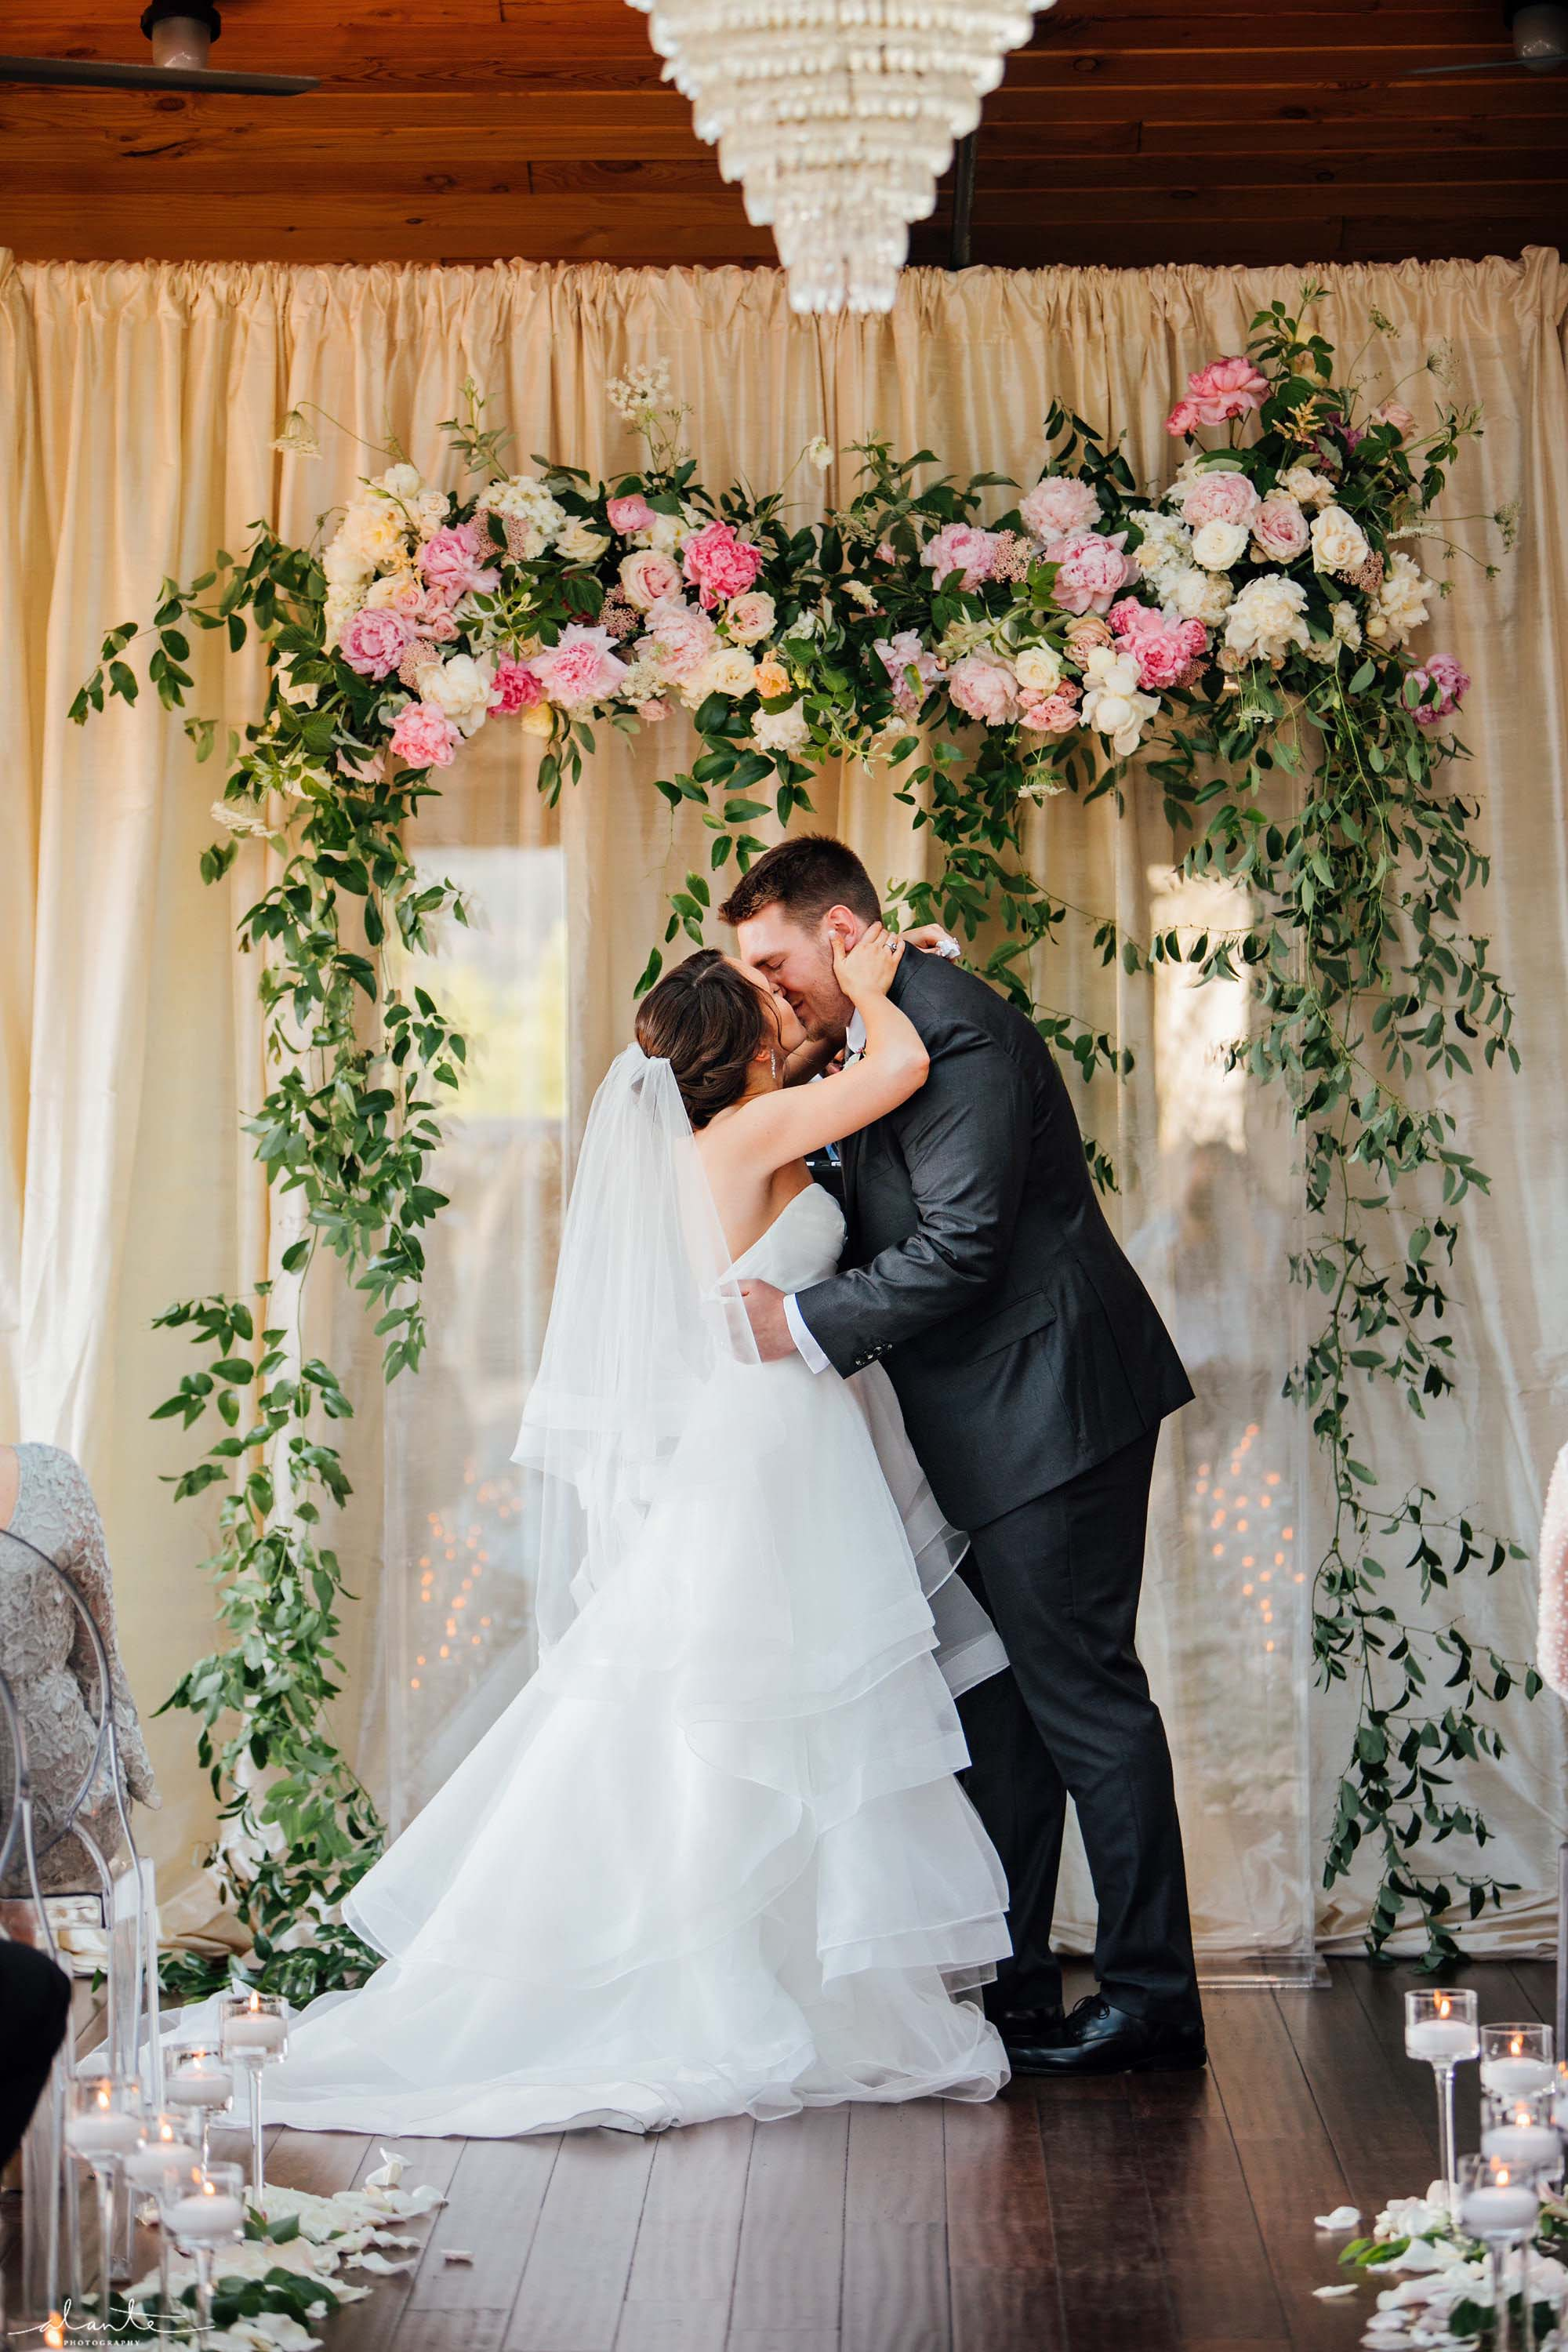 Bride and groom with greenery covered lucite wedding arch at Olympic Rooftop Pavilion - Olympic Rooftop Pavilion wedding with pink peonies by Flora Nova Design Seattle